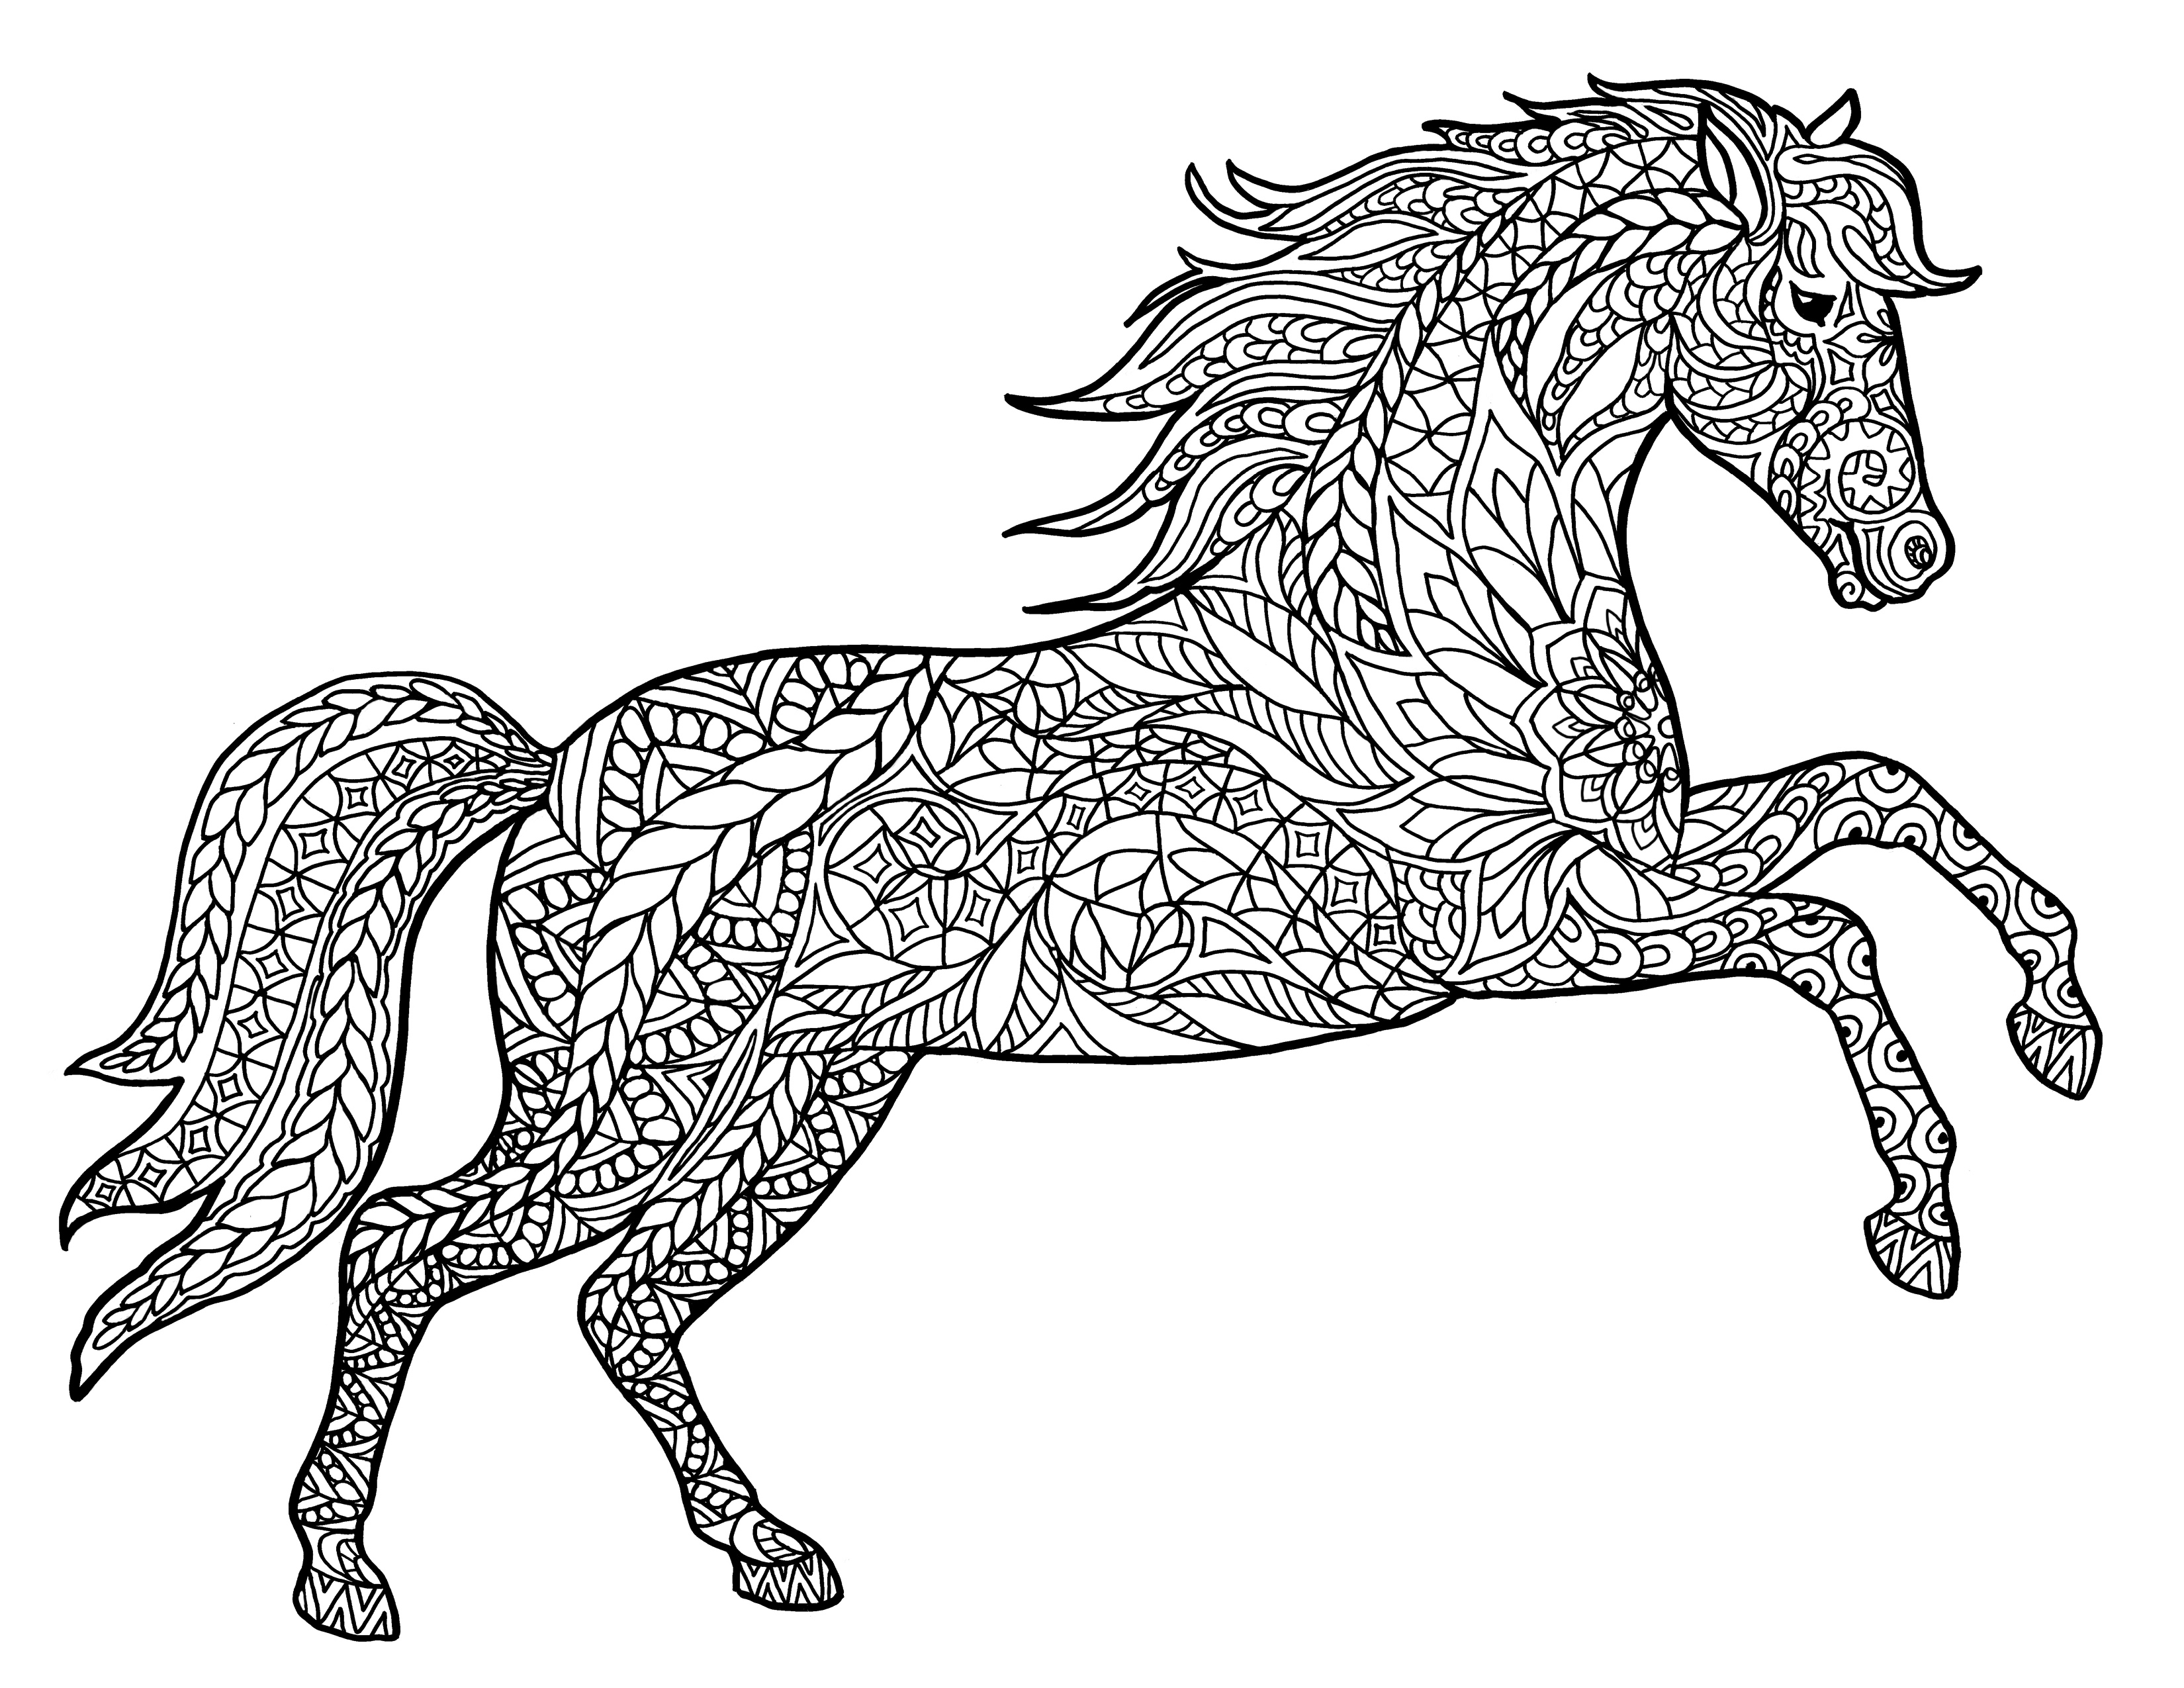 coloring templates animals top 25 free printable wild animals coloring pages online coloring templates animals